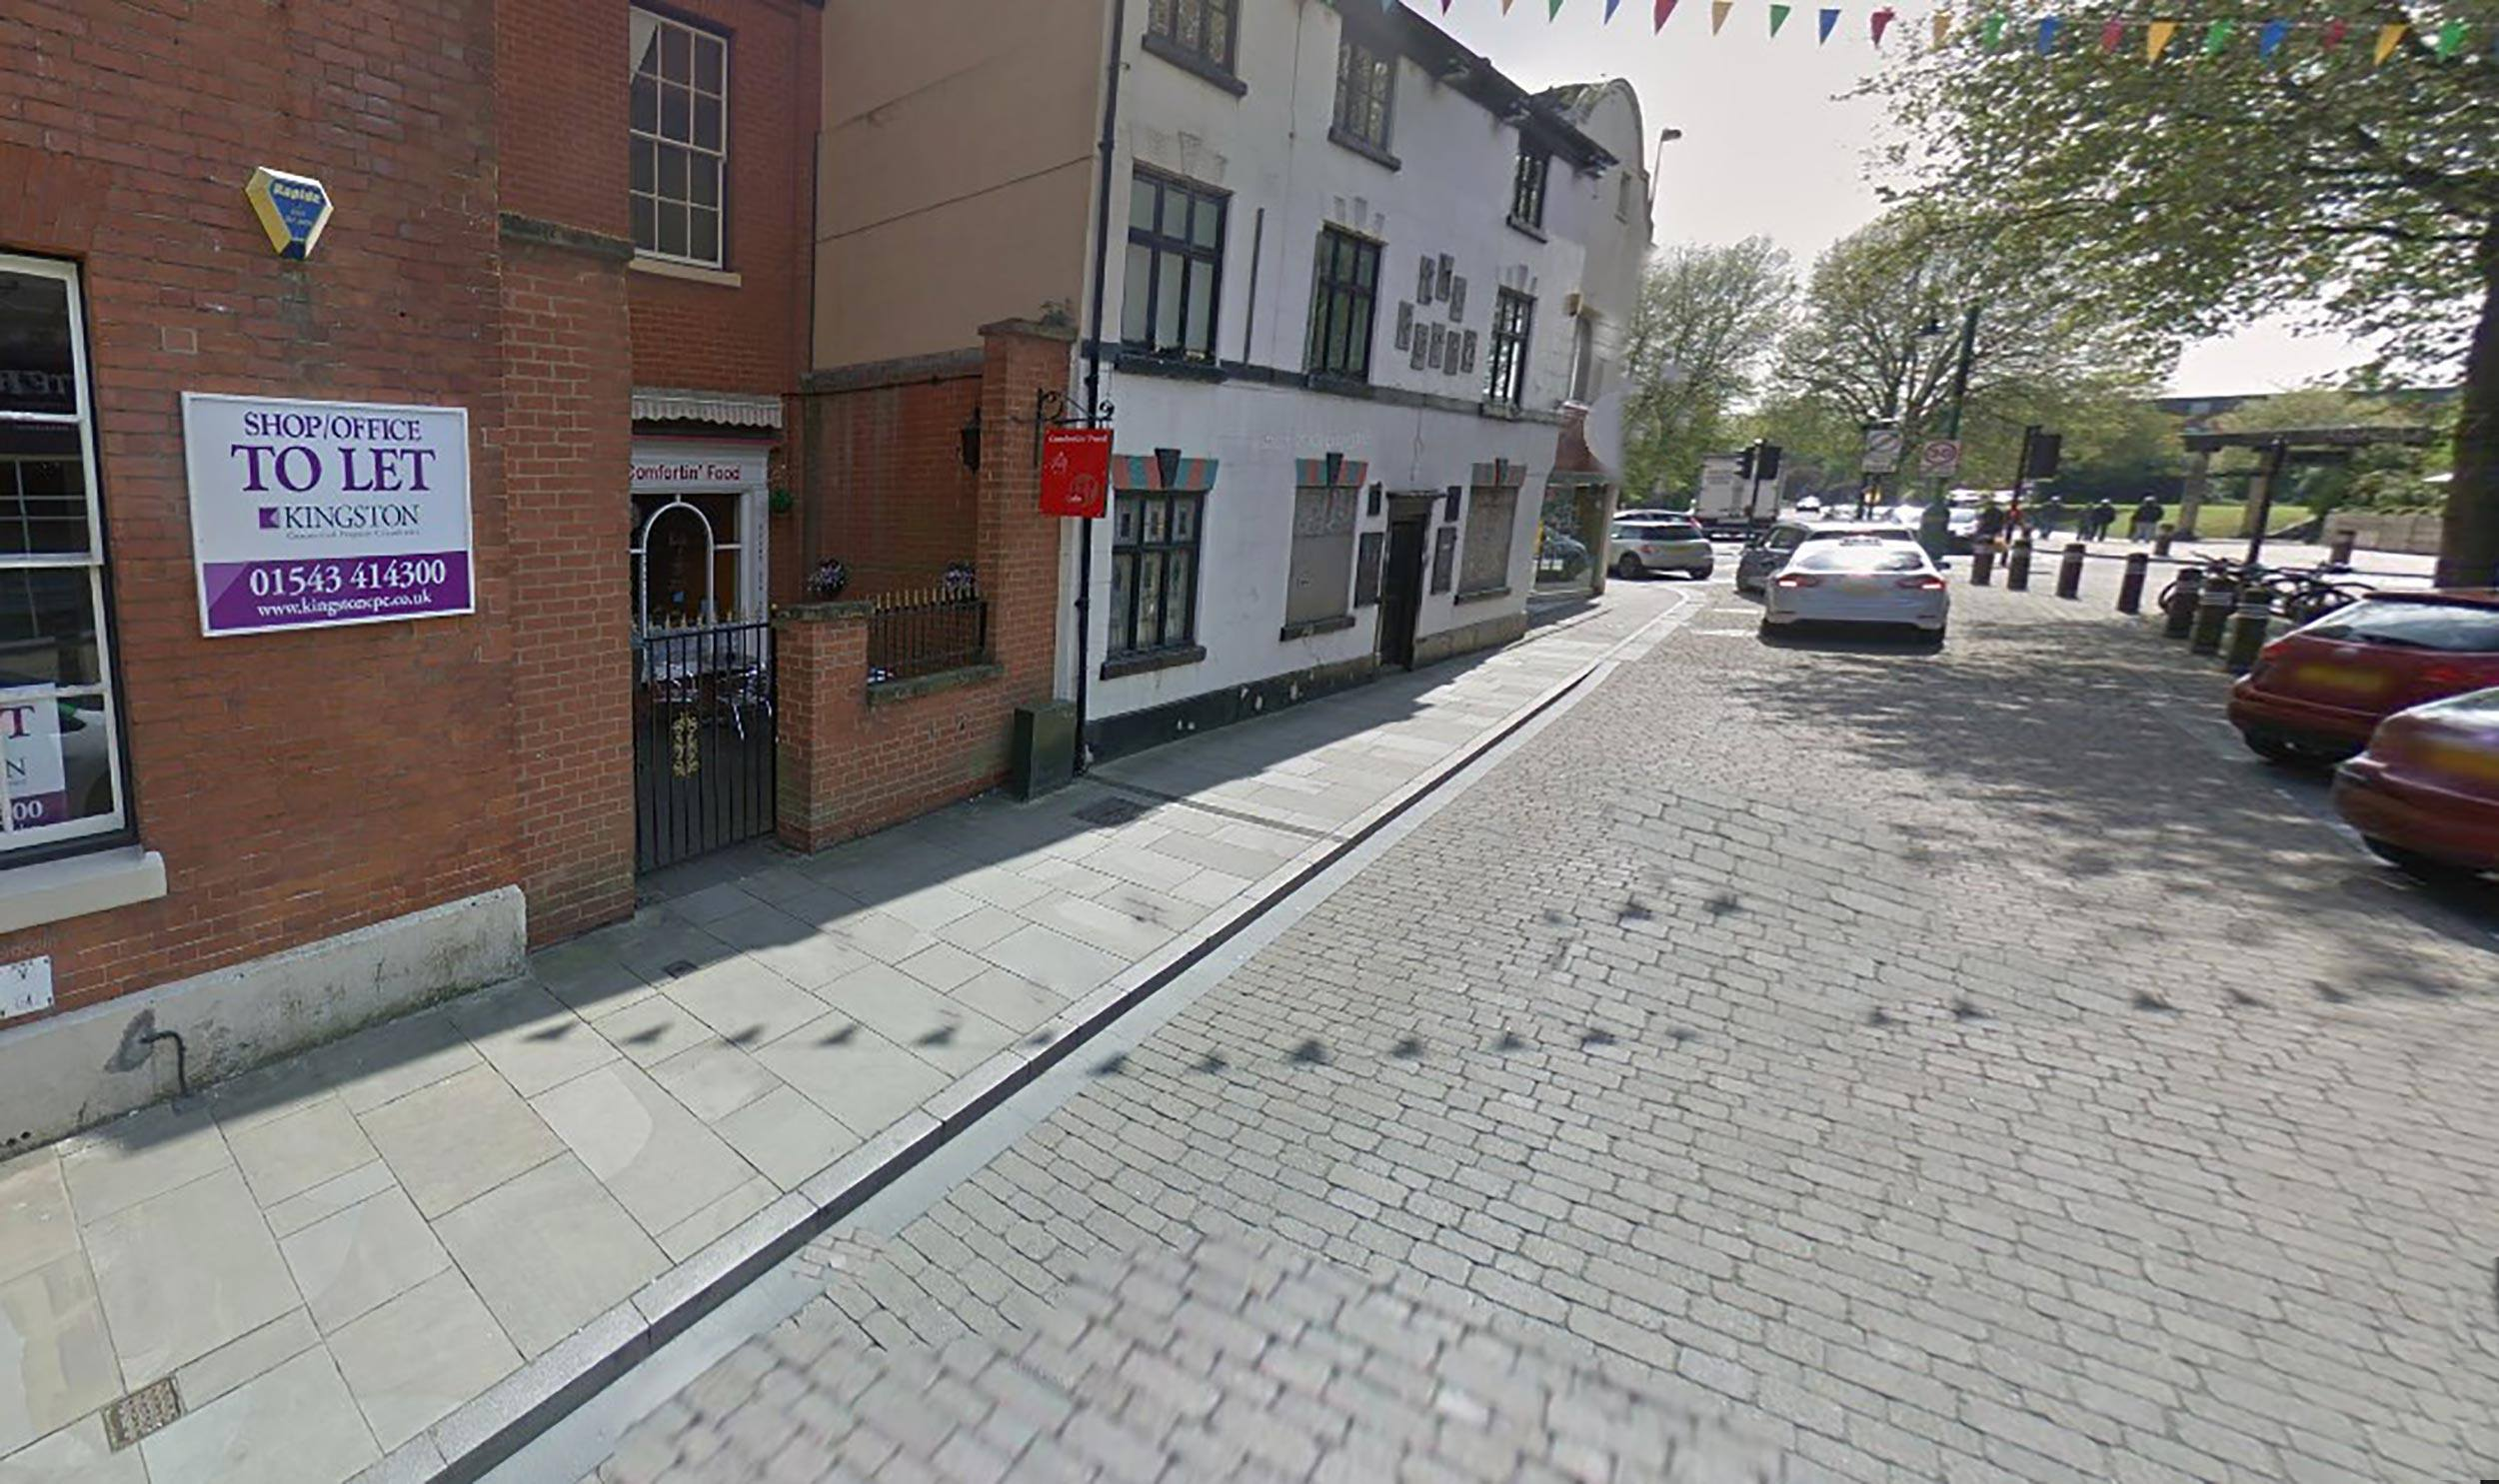 An image of the city centre street wherethe incident took place - UK News